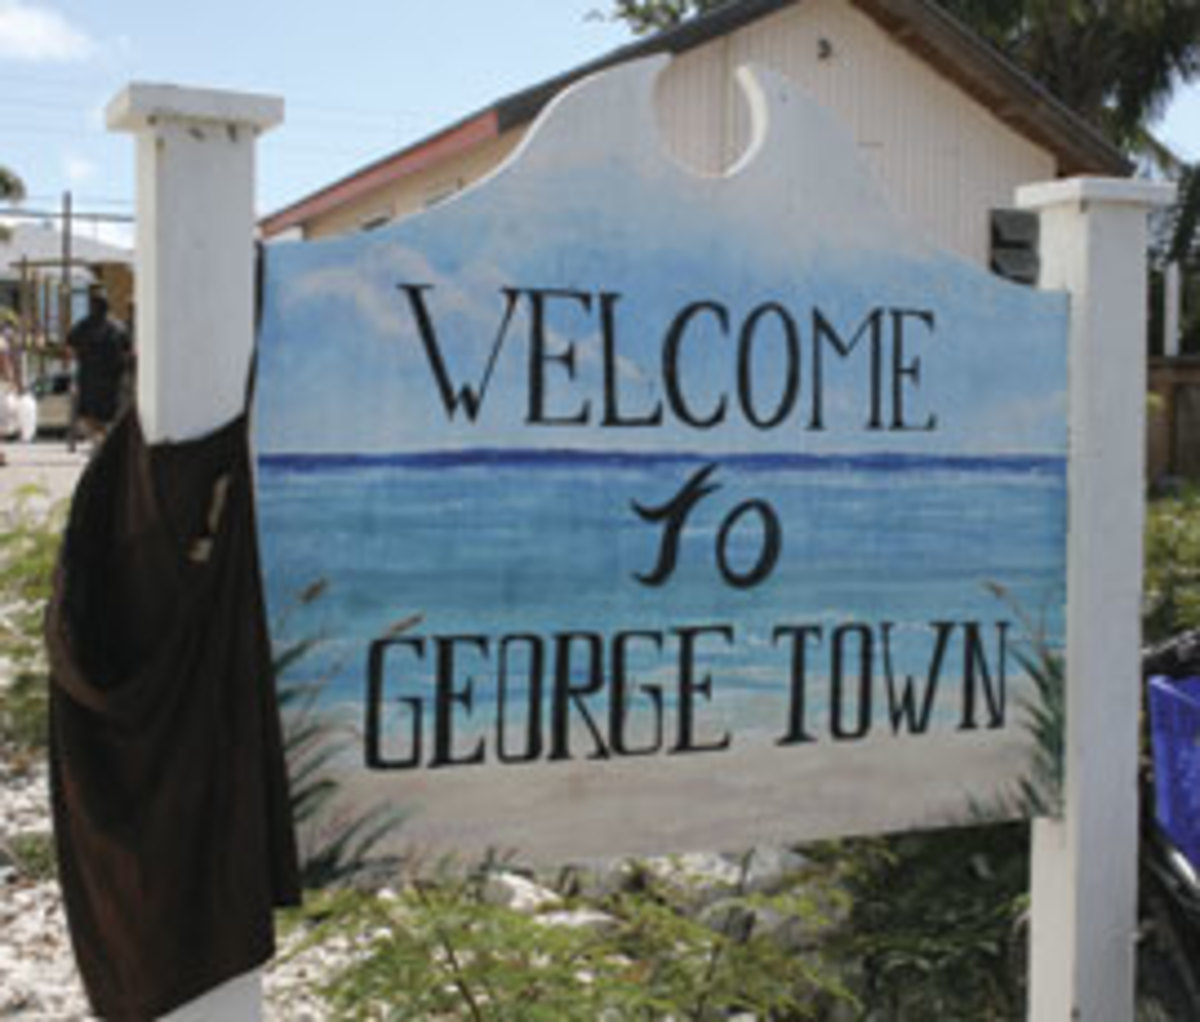 Welcome to George Town sign